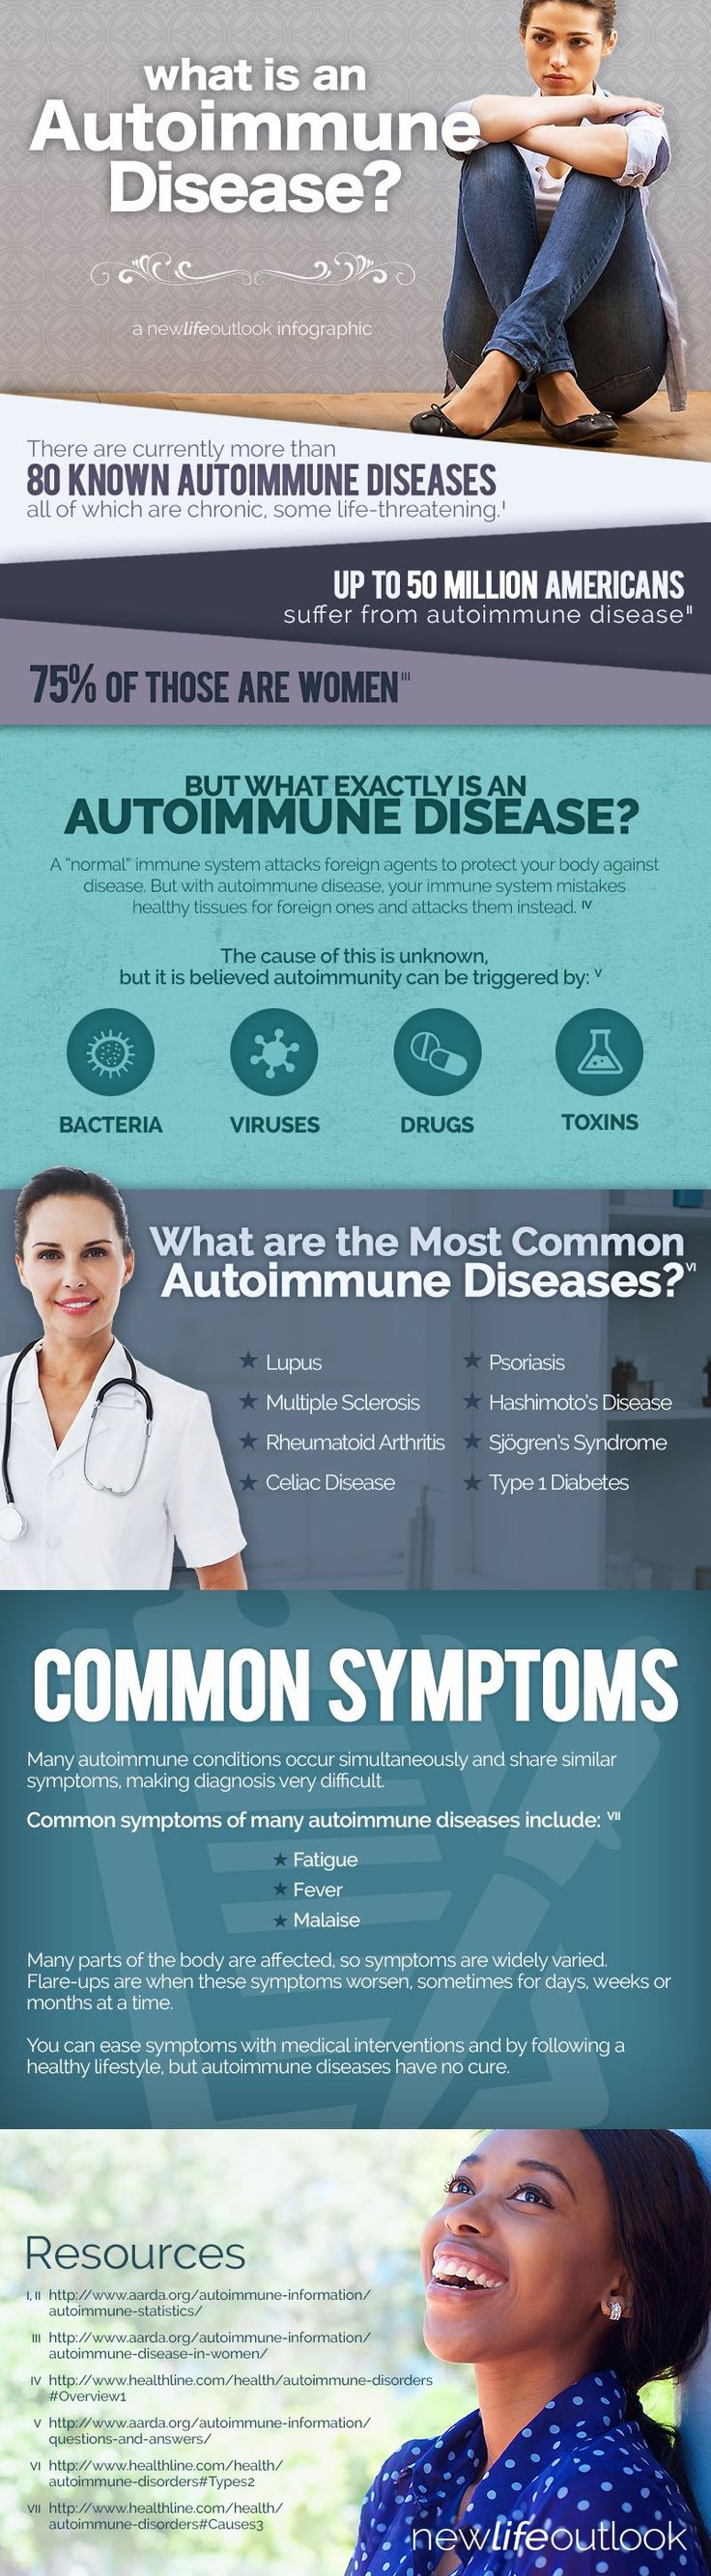 In the United States alone, there is an estimated 50 million people living with autoimmune disease.